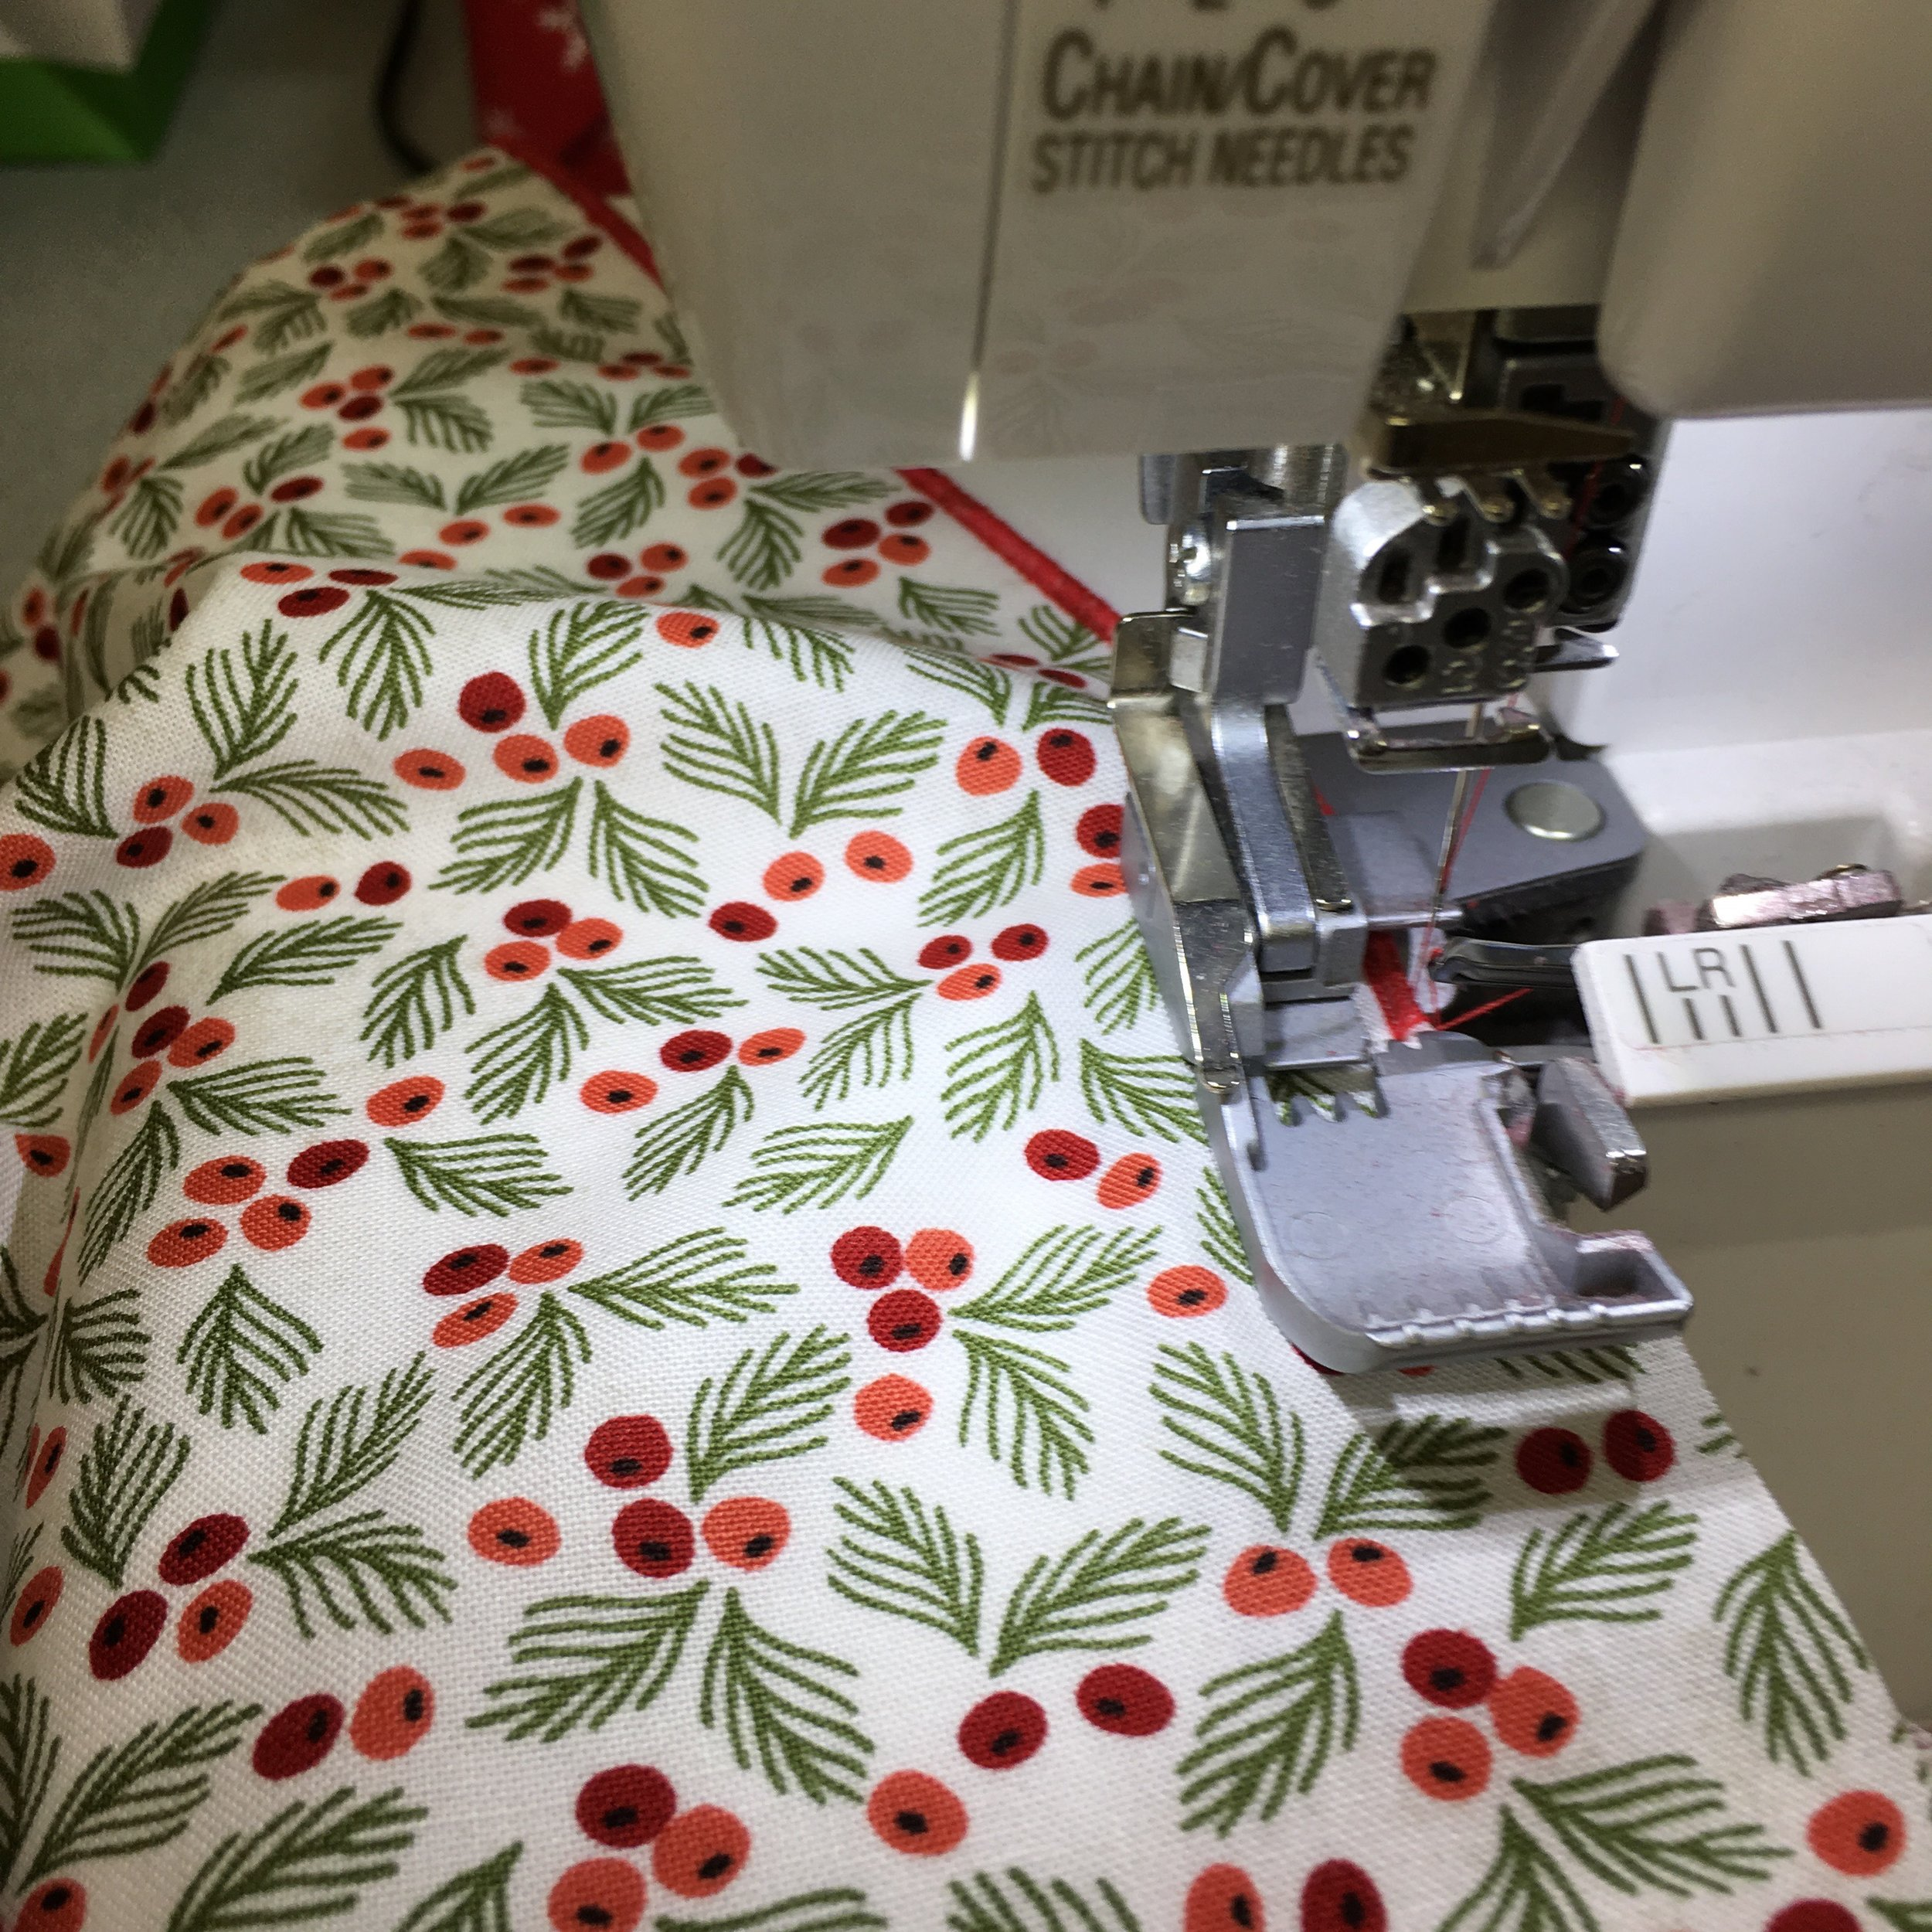 Using a rolled edge hem on a serger